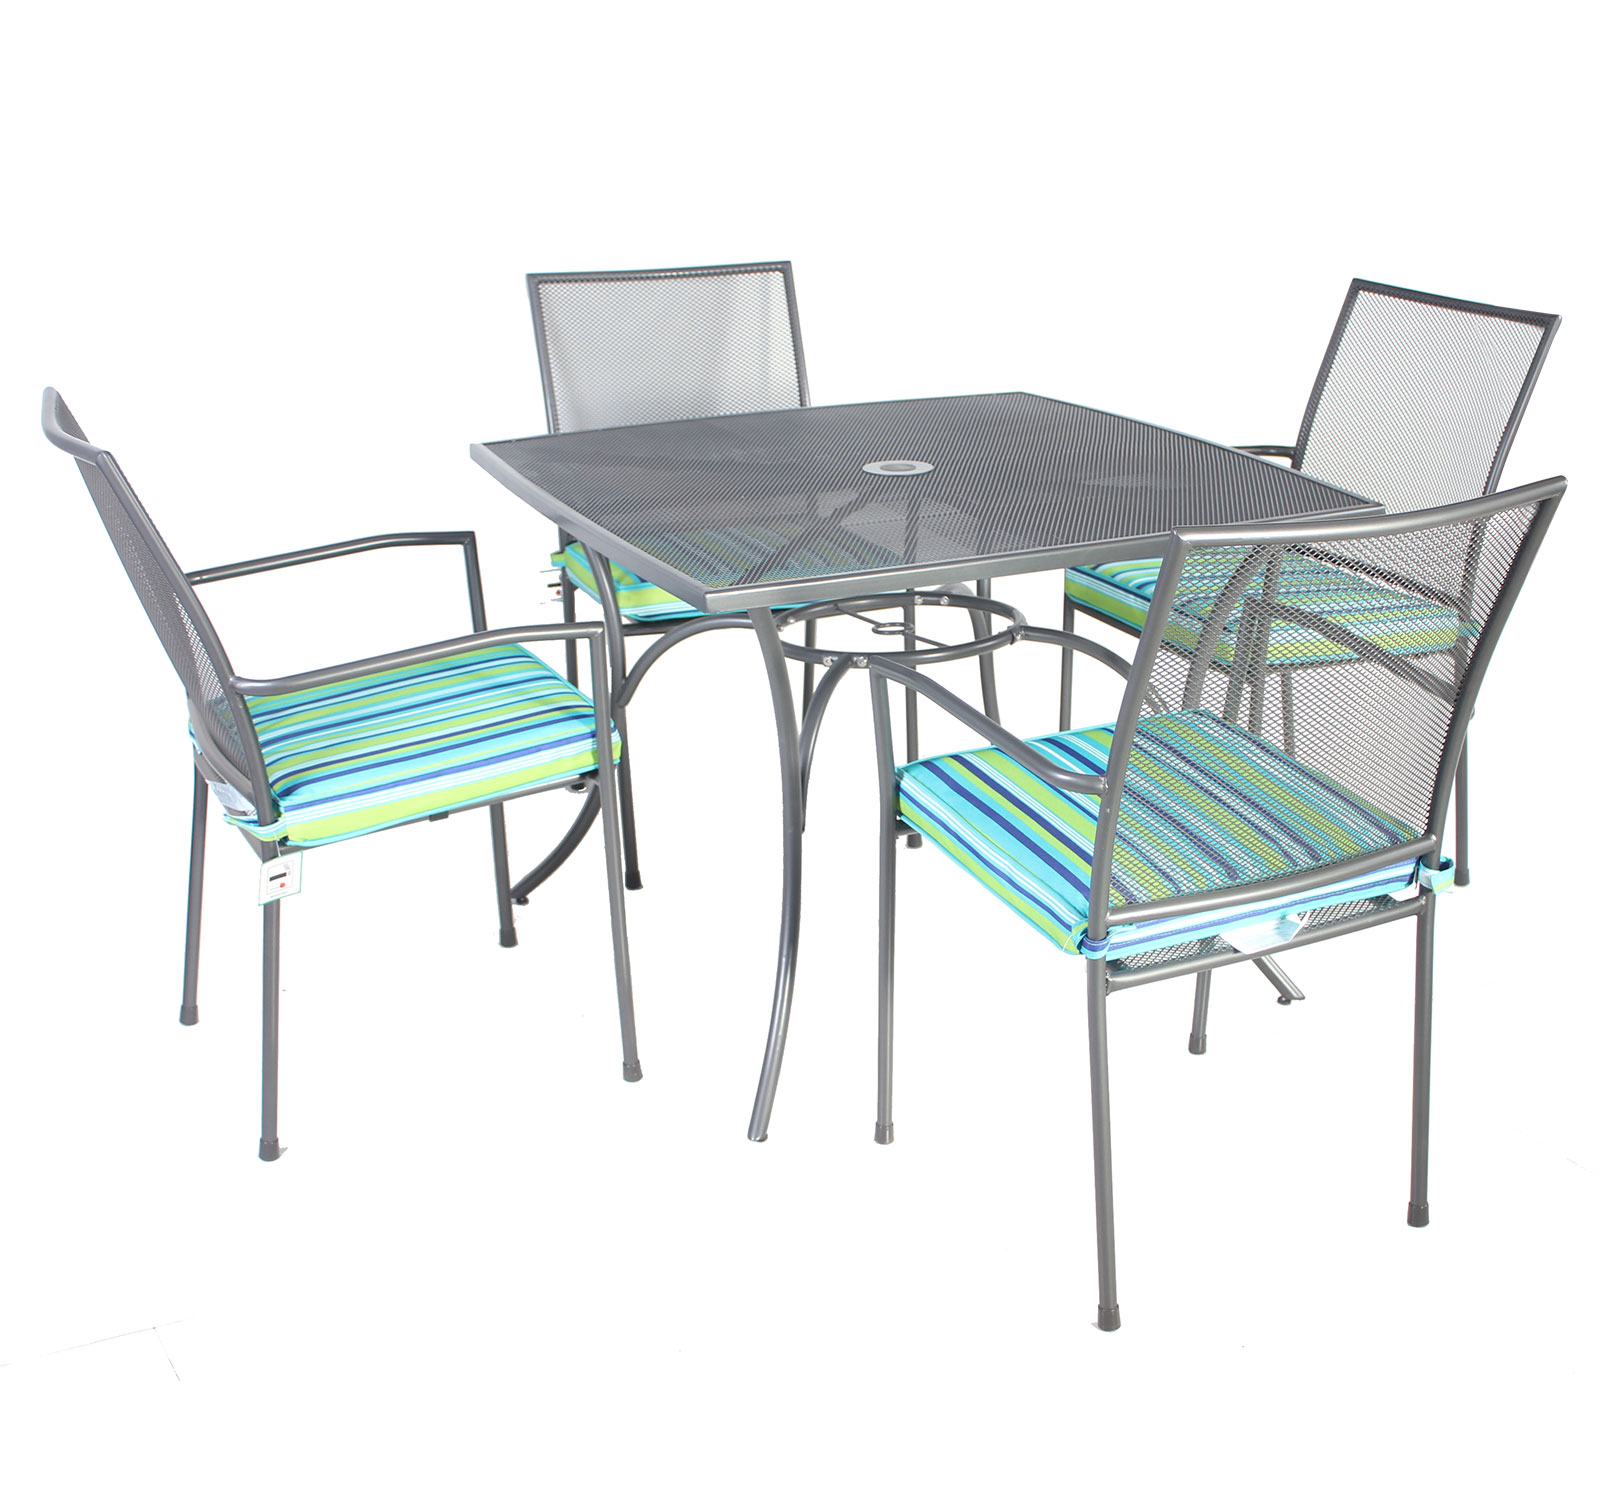 Bentley garden outdoor metal mesh 5 piece table and chairs for Metal patio table and chairs set